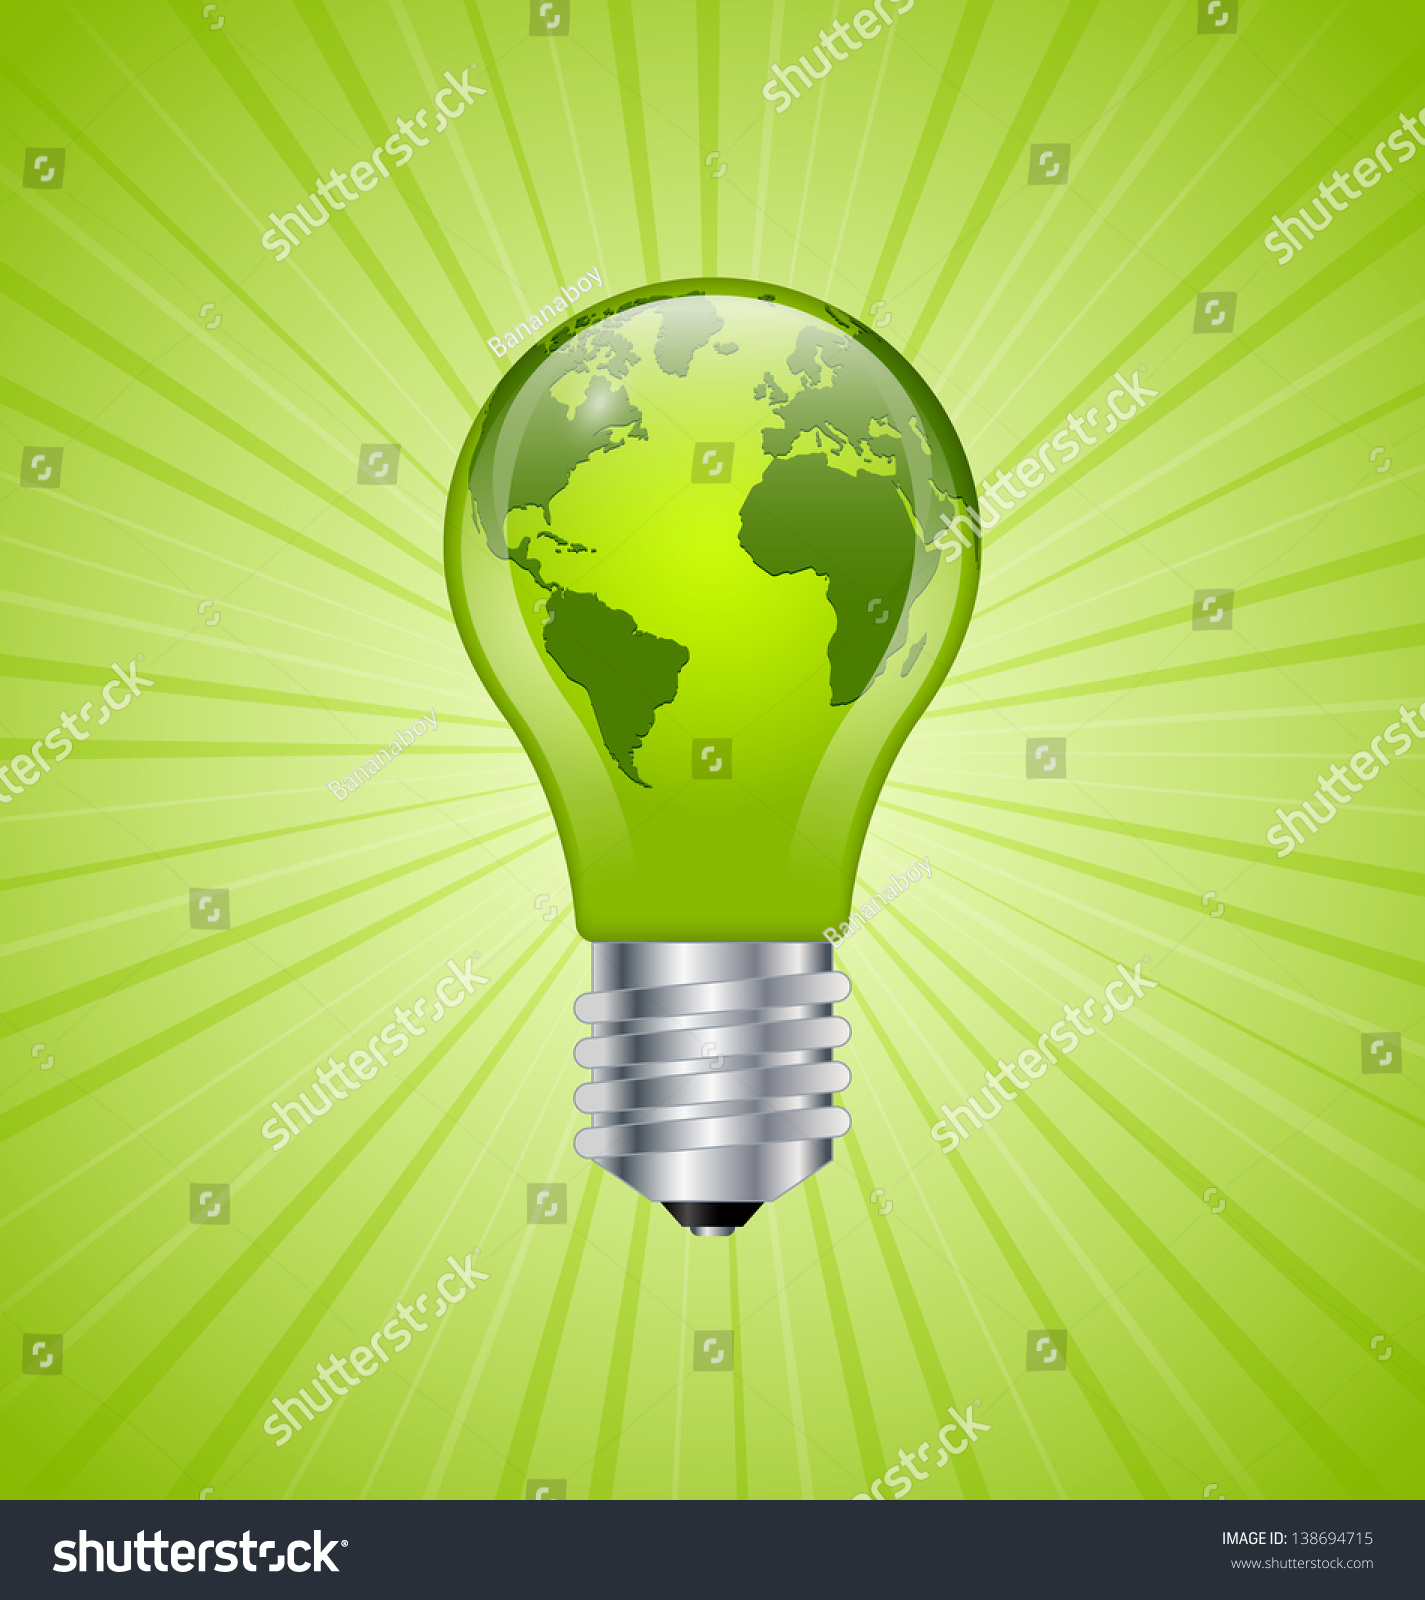 Ecology and saving energy icon with light bulb and planet Earth. Ecology Saving Energy Icon Light Bulb Stock Vector 138694715